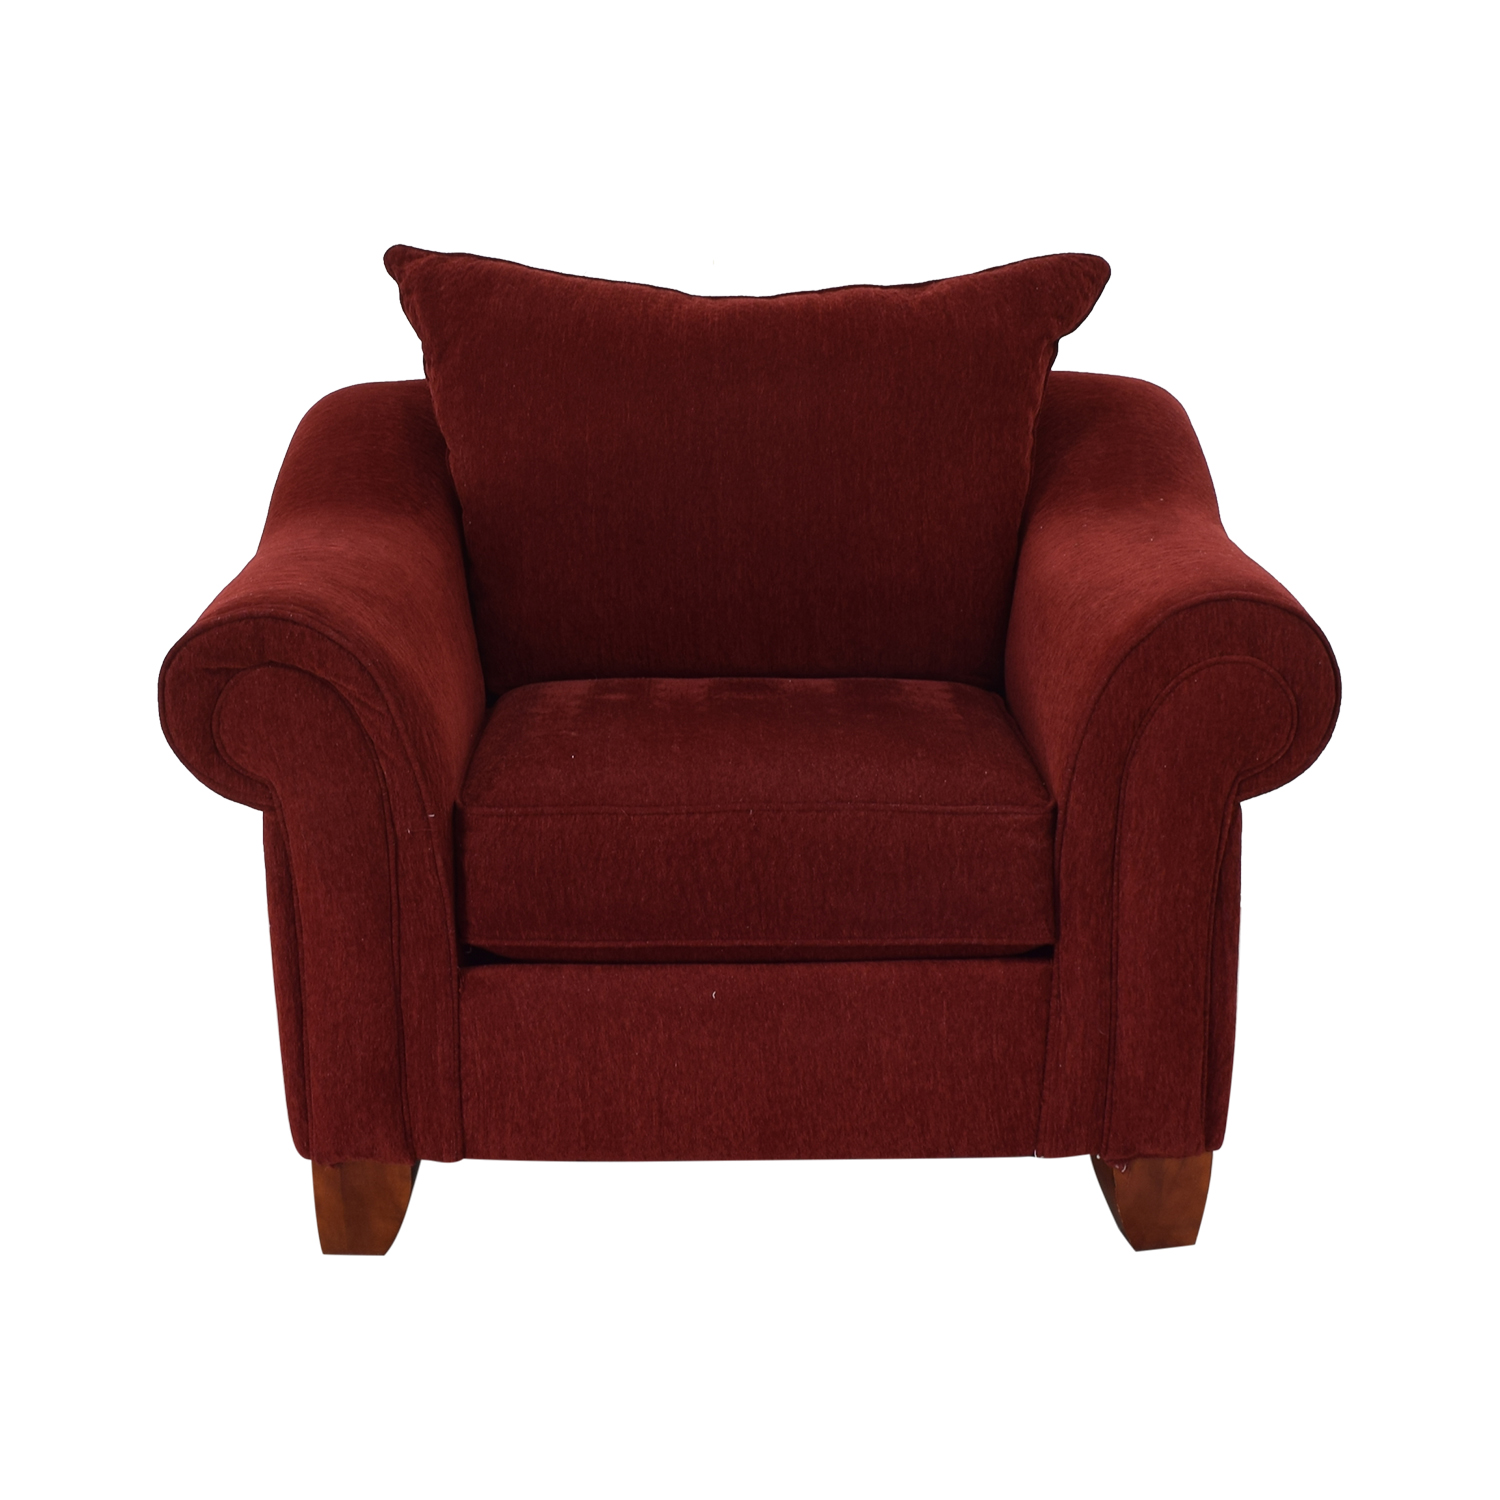 buy Raymour & Flanigan Raymour & Flanigan Red Arm Accent Chair online